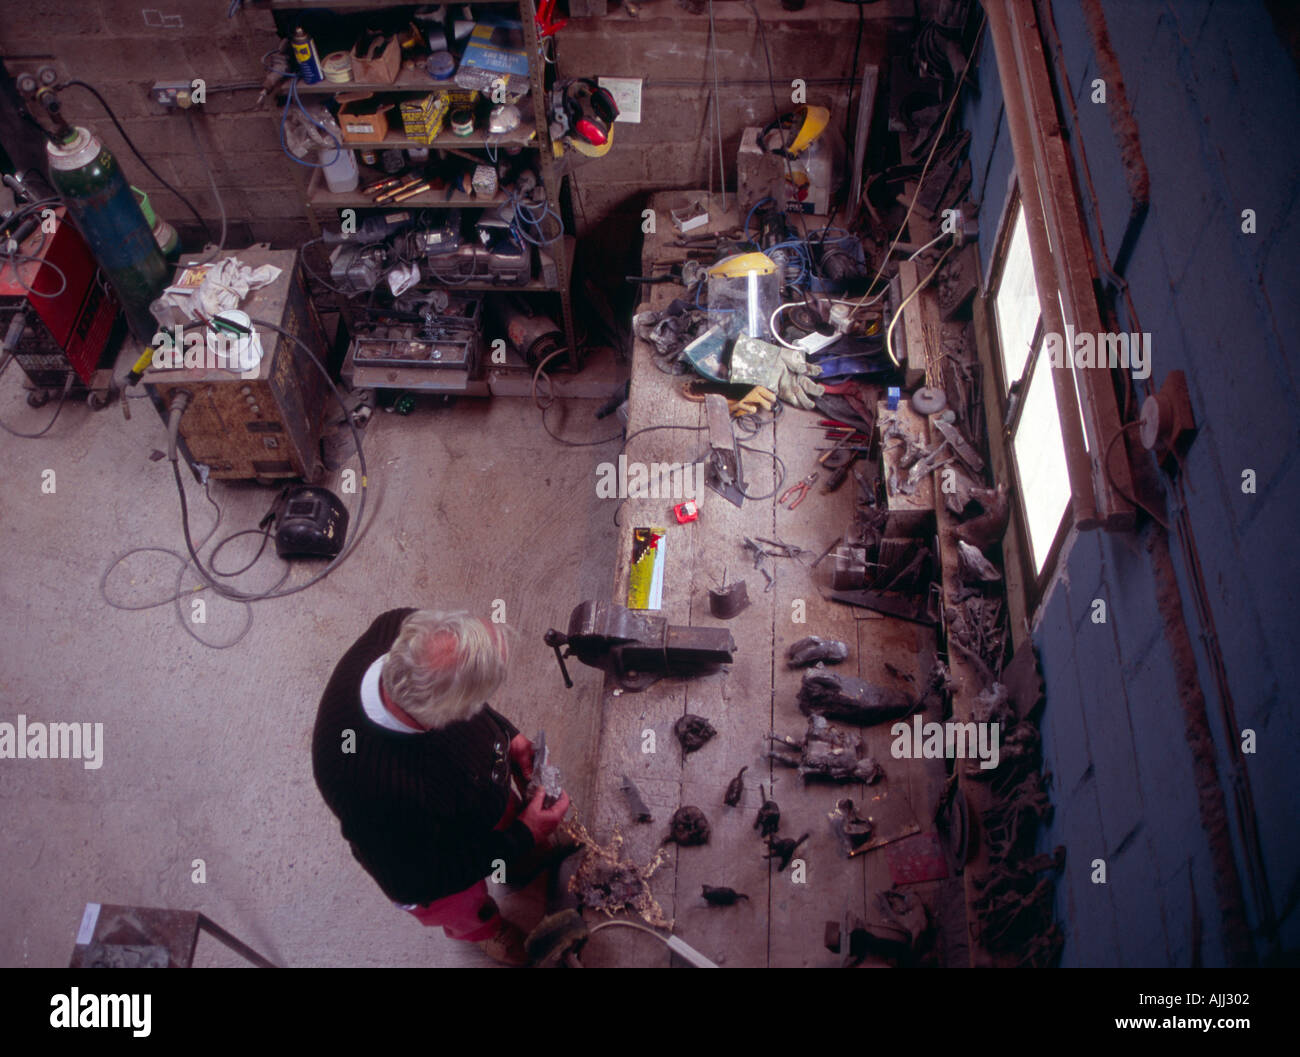 Mature male in metalwork workshop - Stock Image